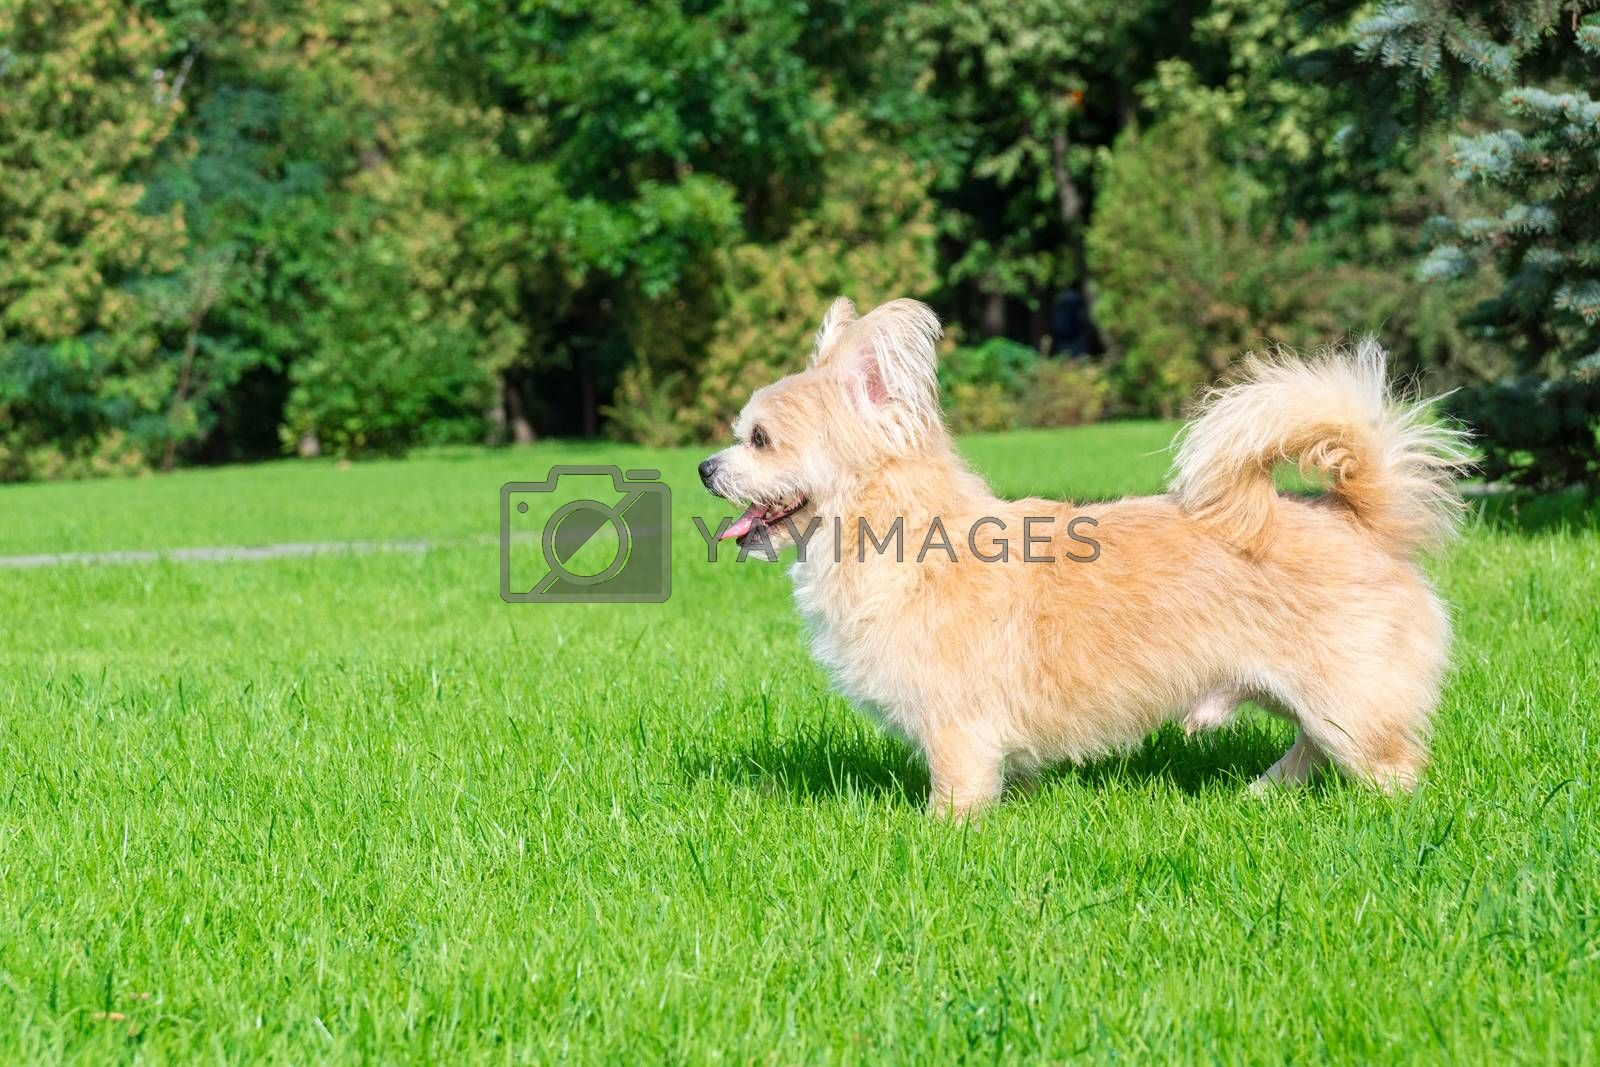 Little dog lying on the grass in the park, nature, autumn